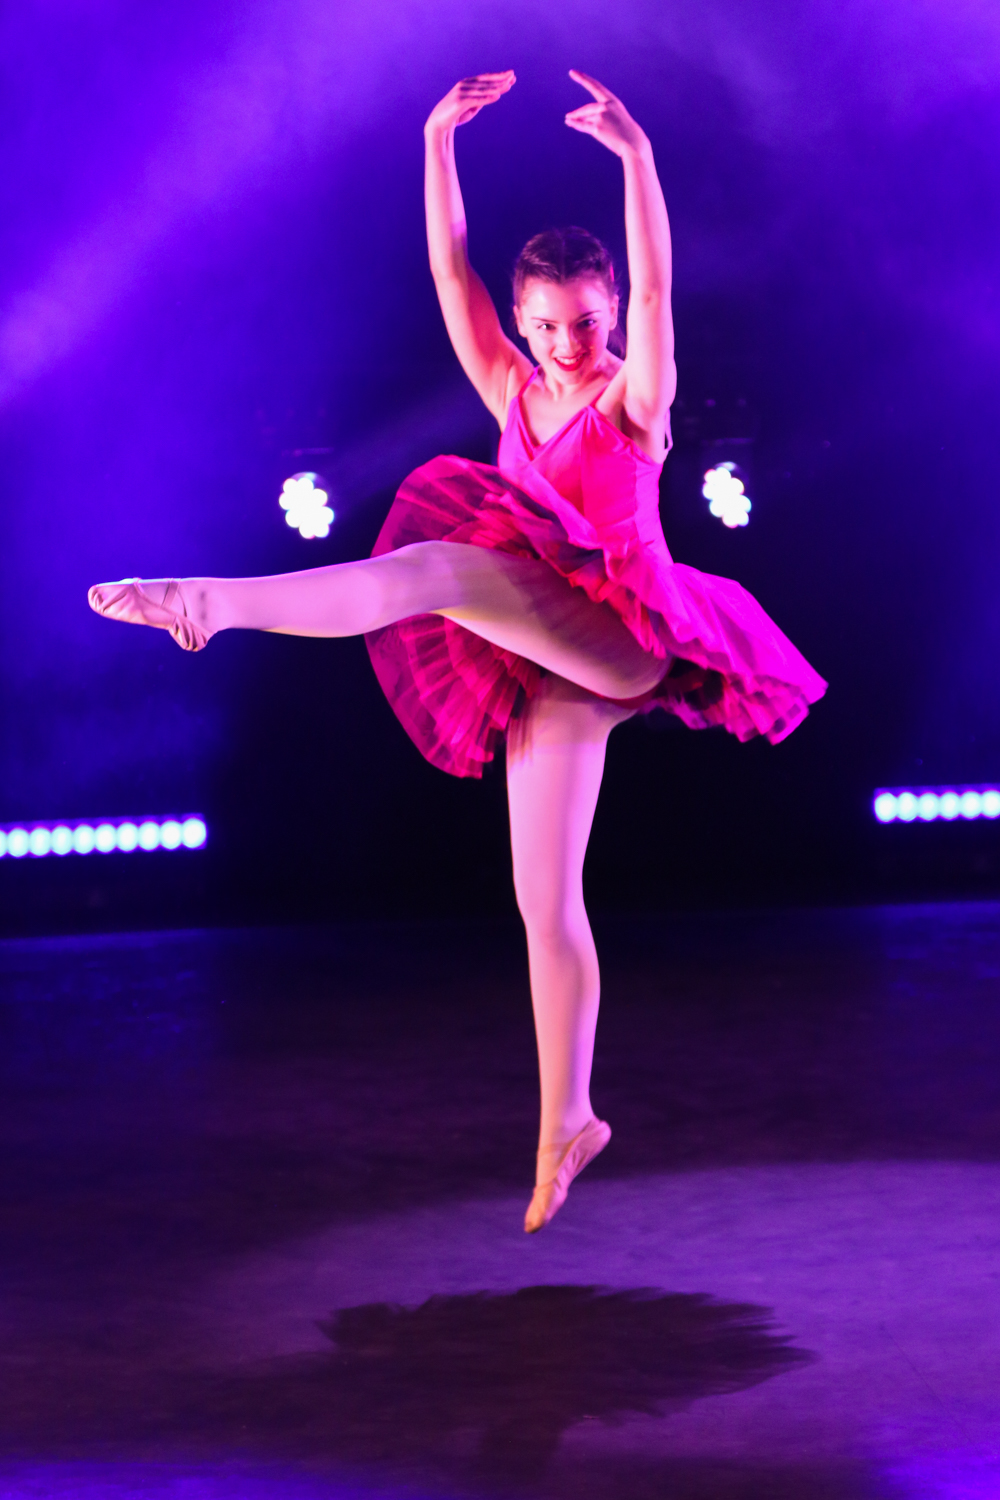 dance show photography